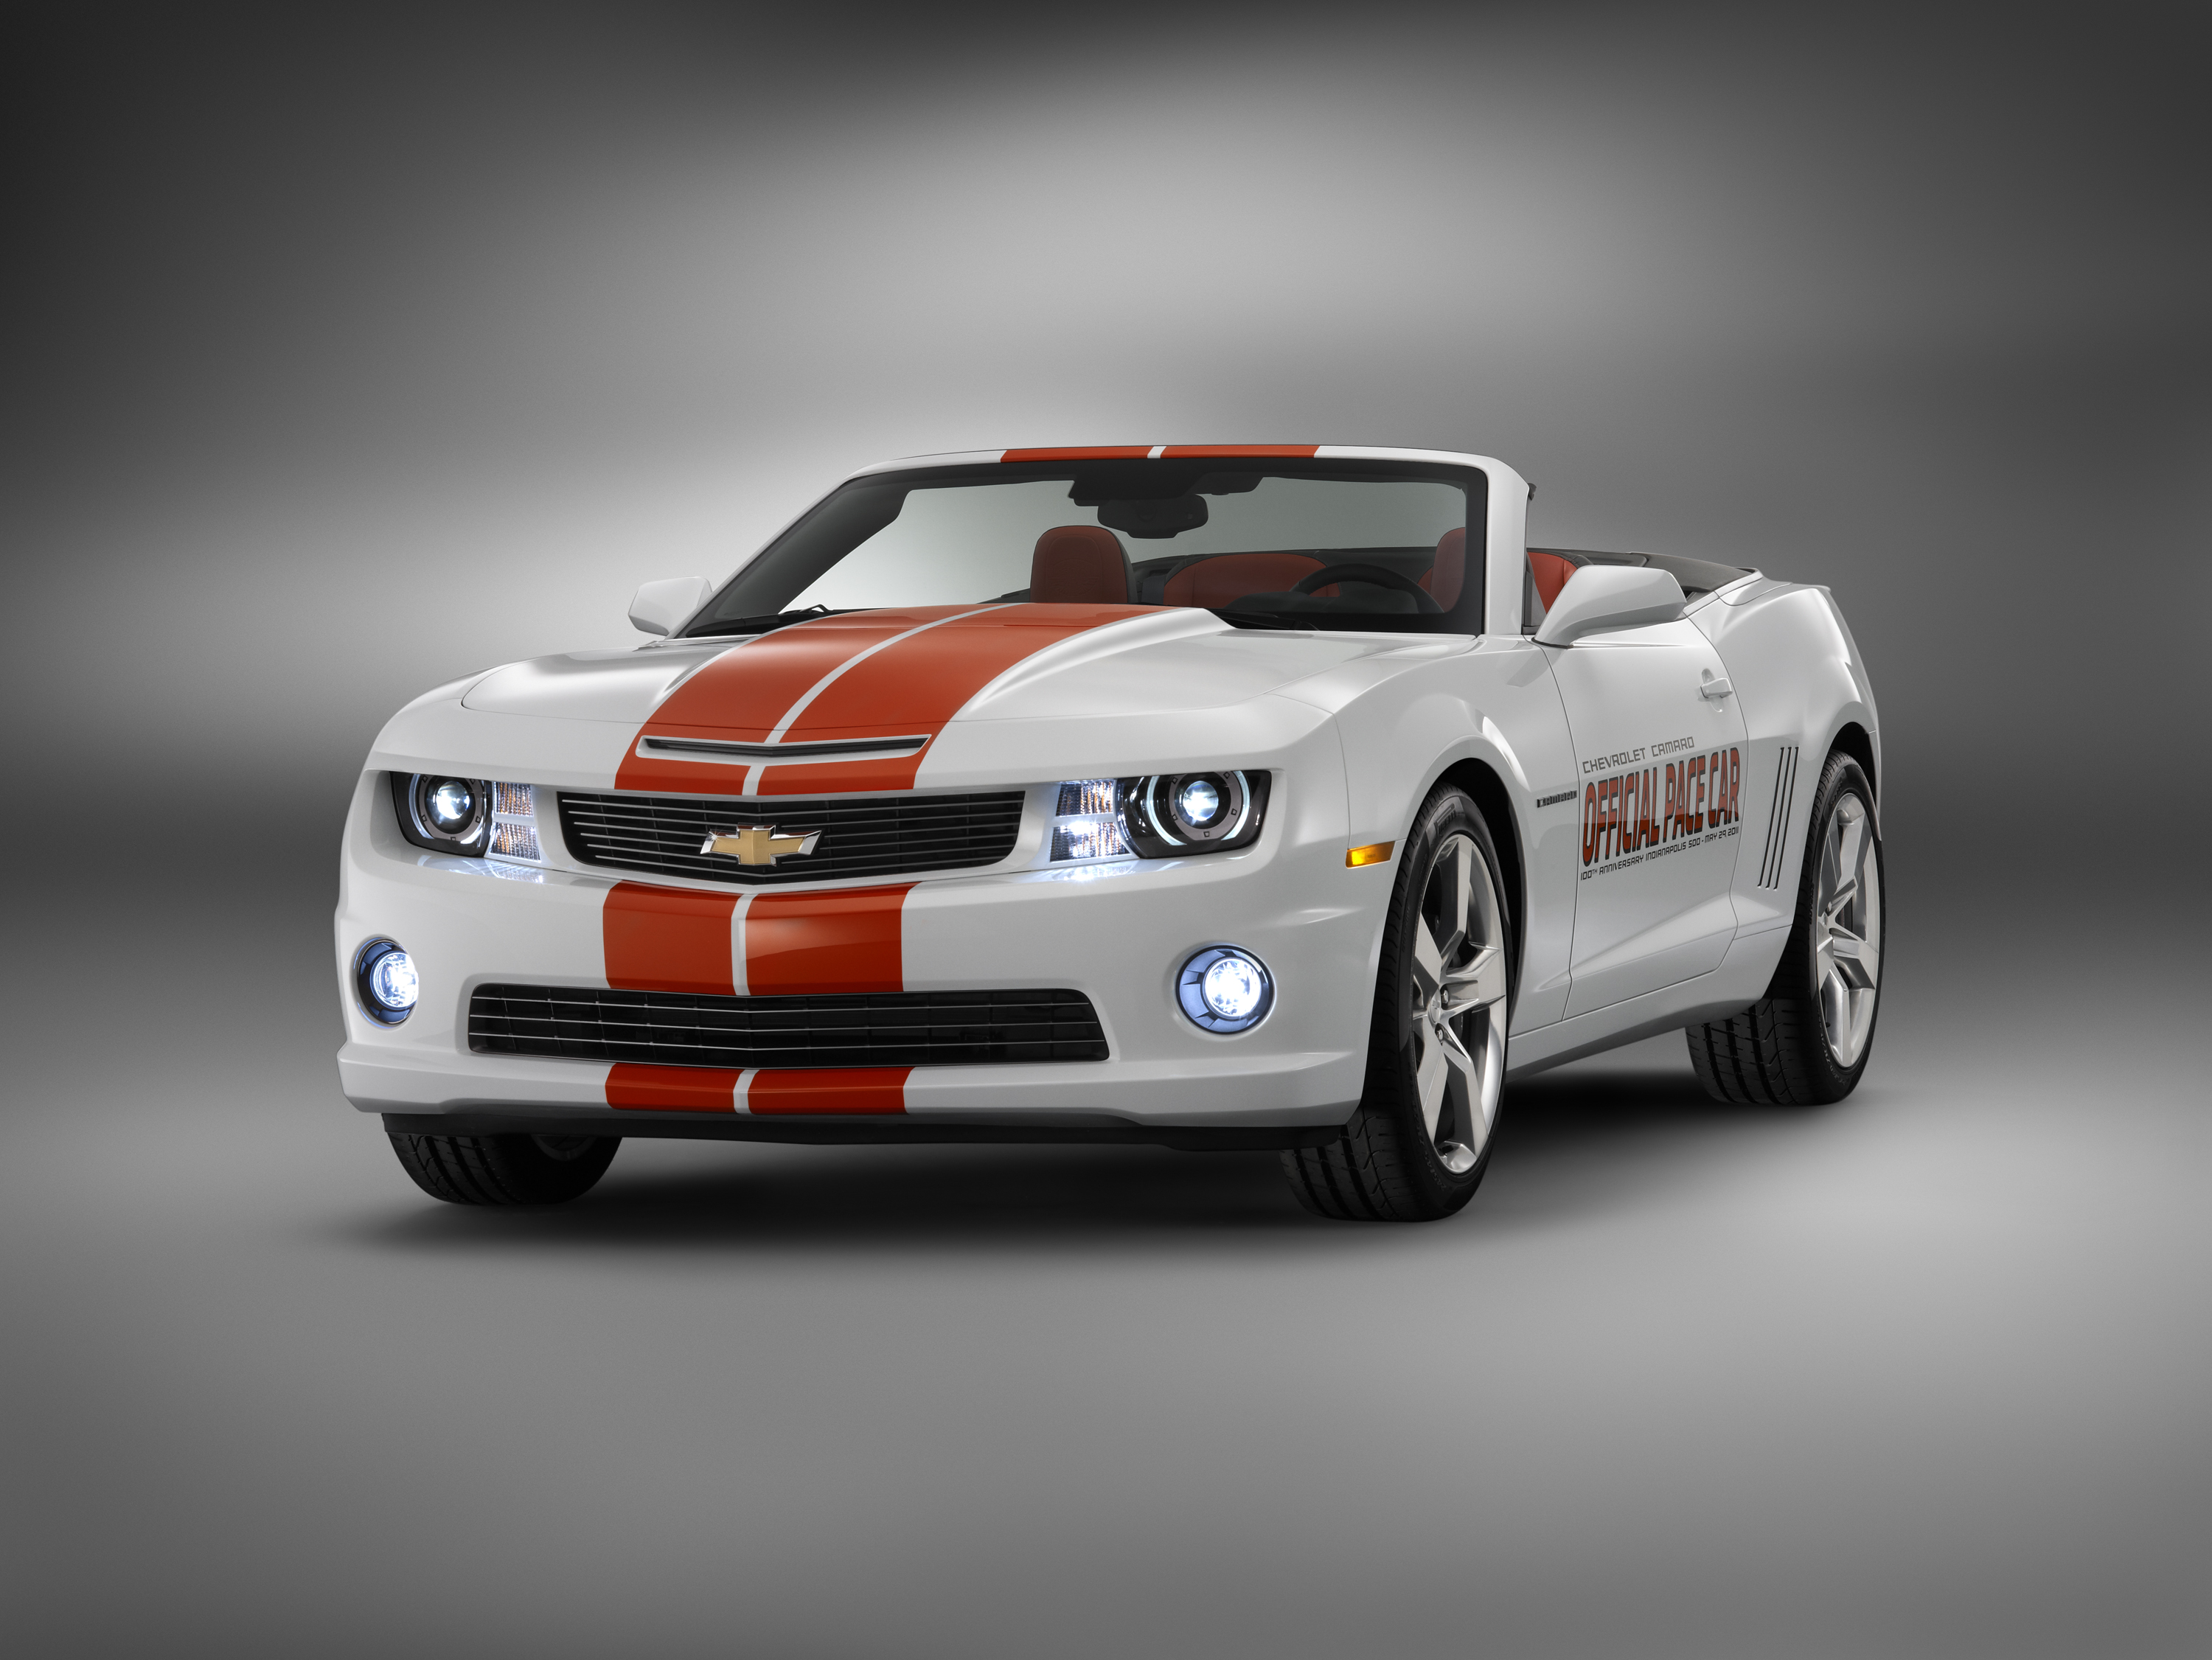 chevrolet camaro convertible official pace car of 2011 indy 500 motor city muscle cars. Black Bedroom Furniture Sets. Home Design Ideas